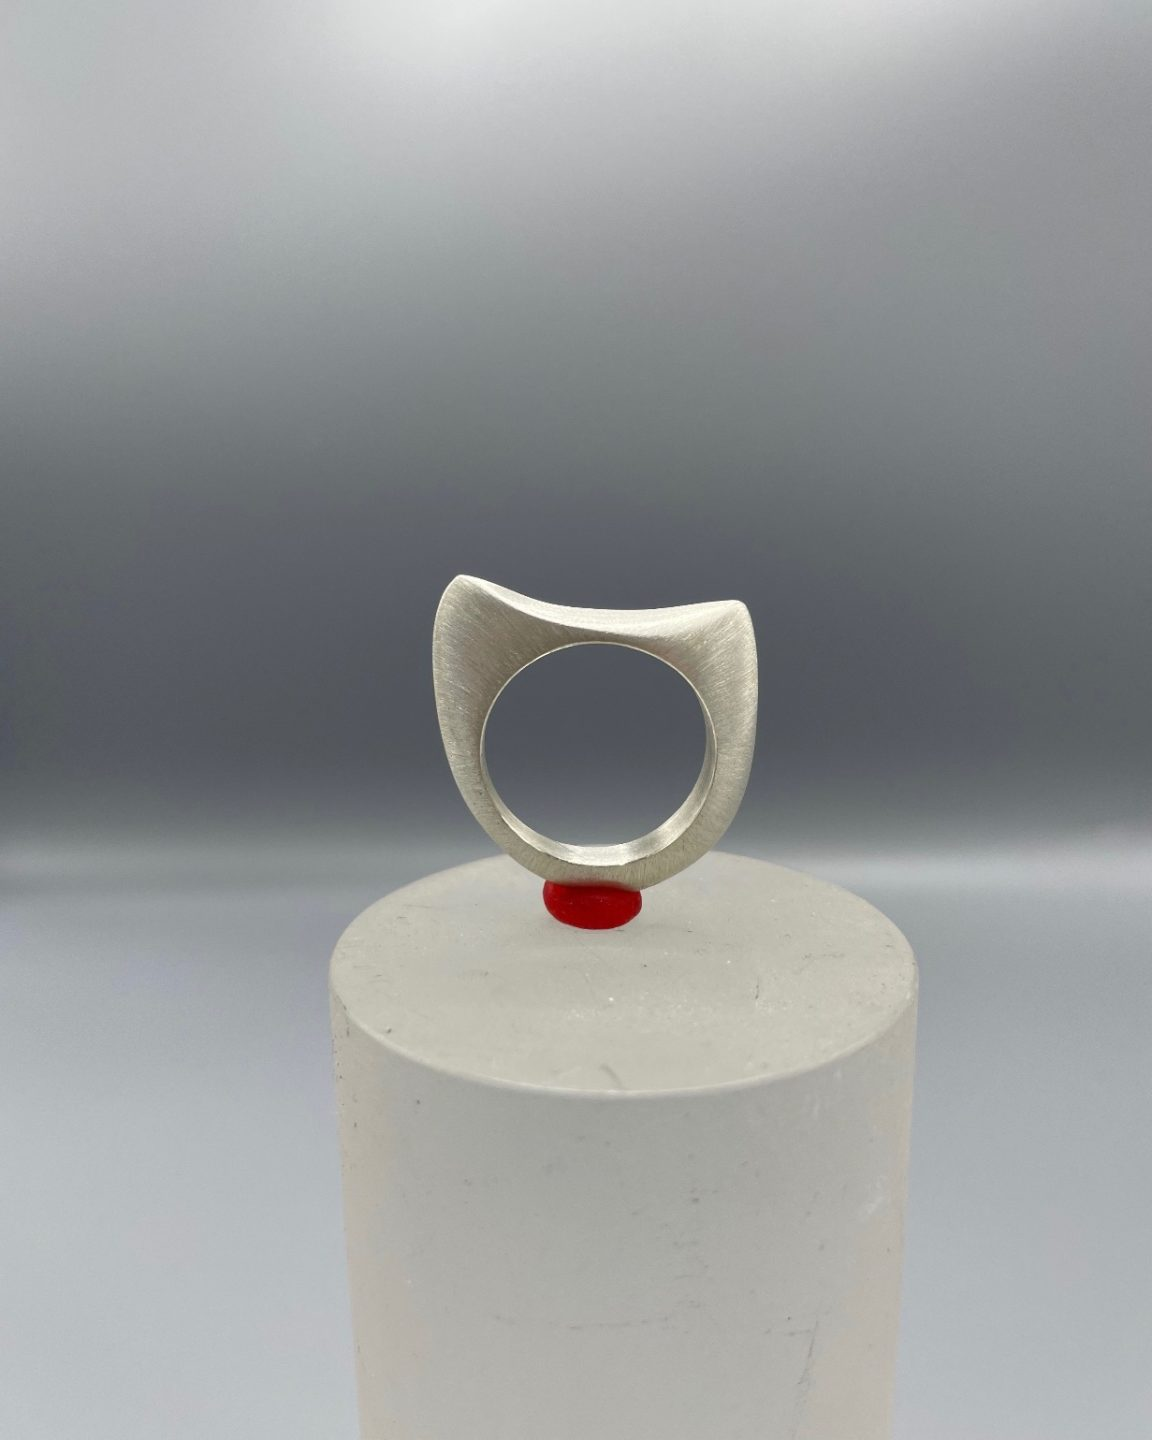 Ring casted in sterling silver